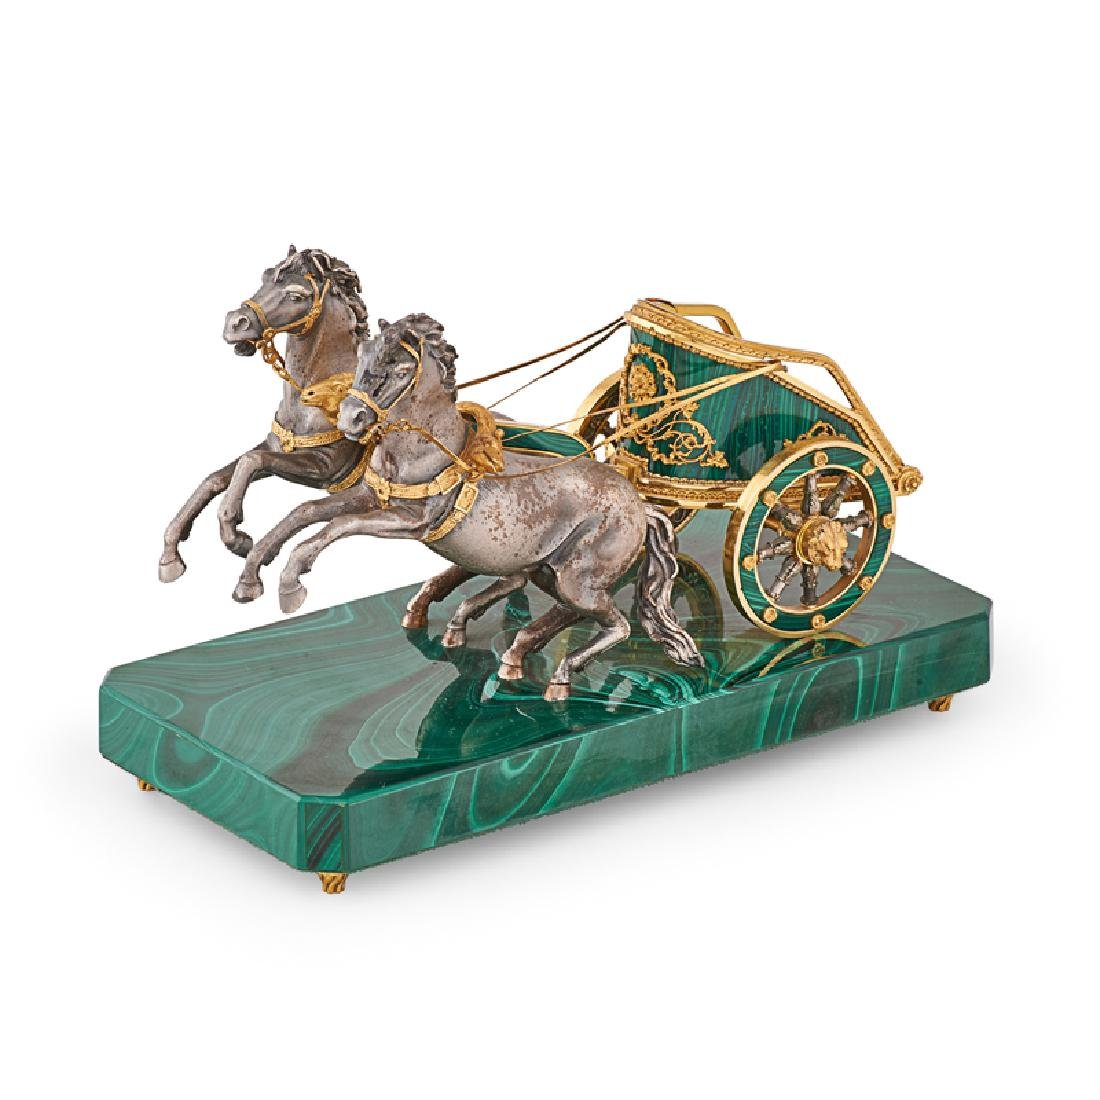 SILVER AND MALACHITE CHARIOT